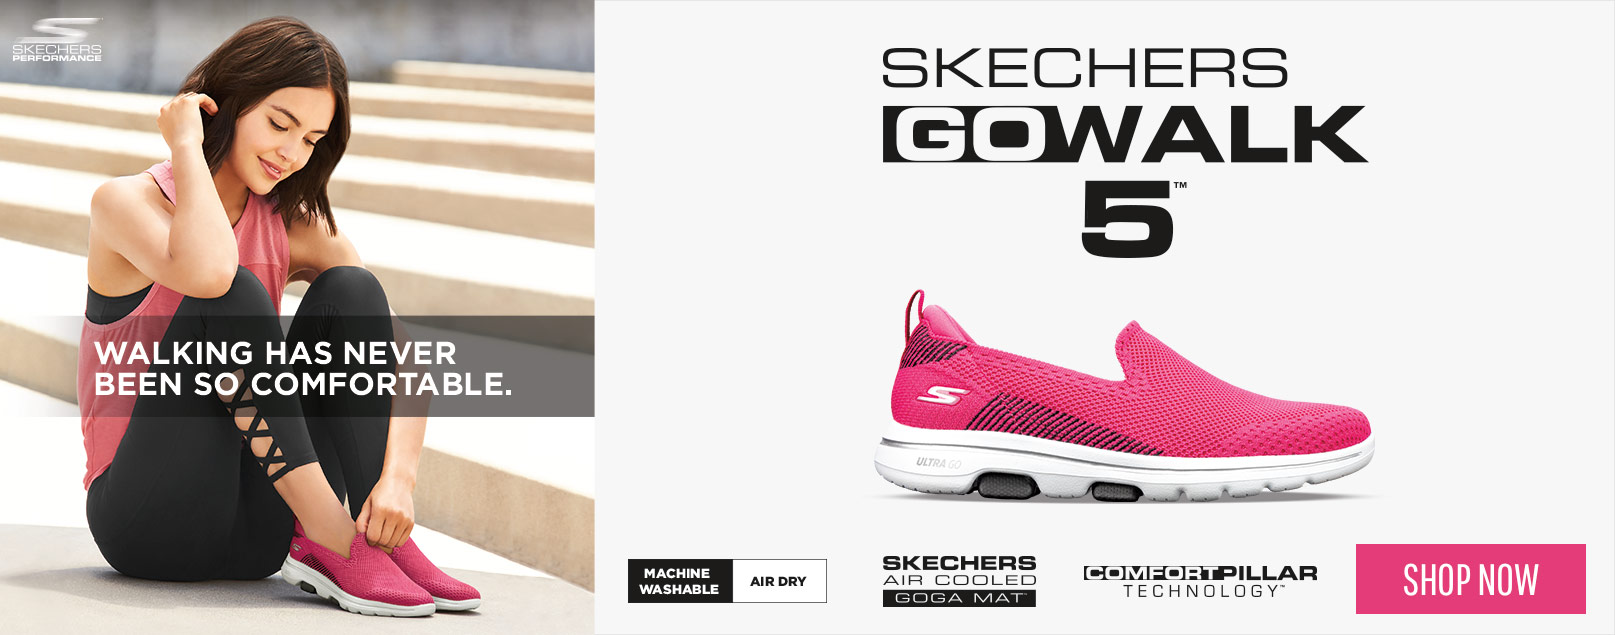 The leaders in walking technology keep innovating with the Skechers Performance GOwalk 5 - the latest in comfort and cushioning to keep you walking with support and stability.  Selected shoes are machine washable.